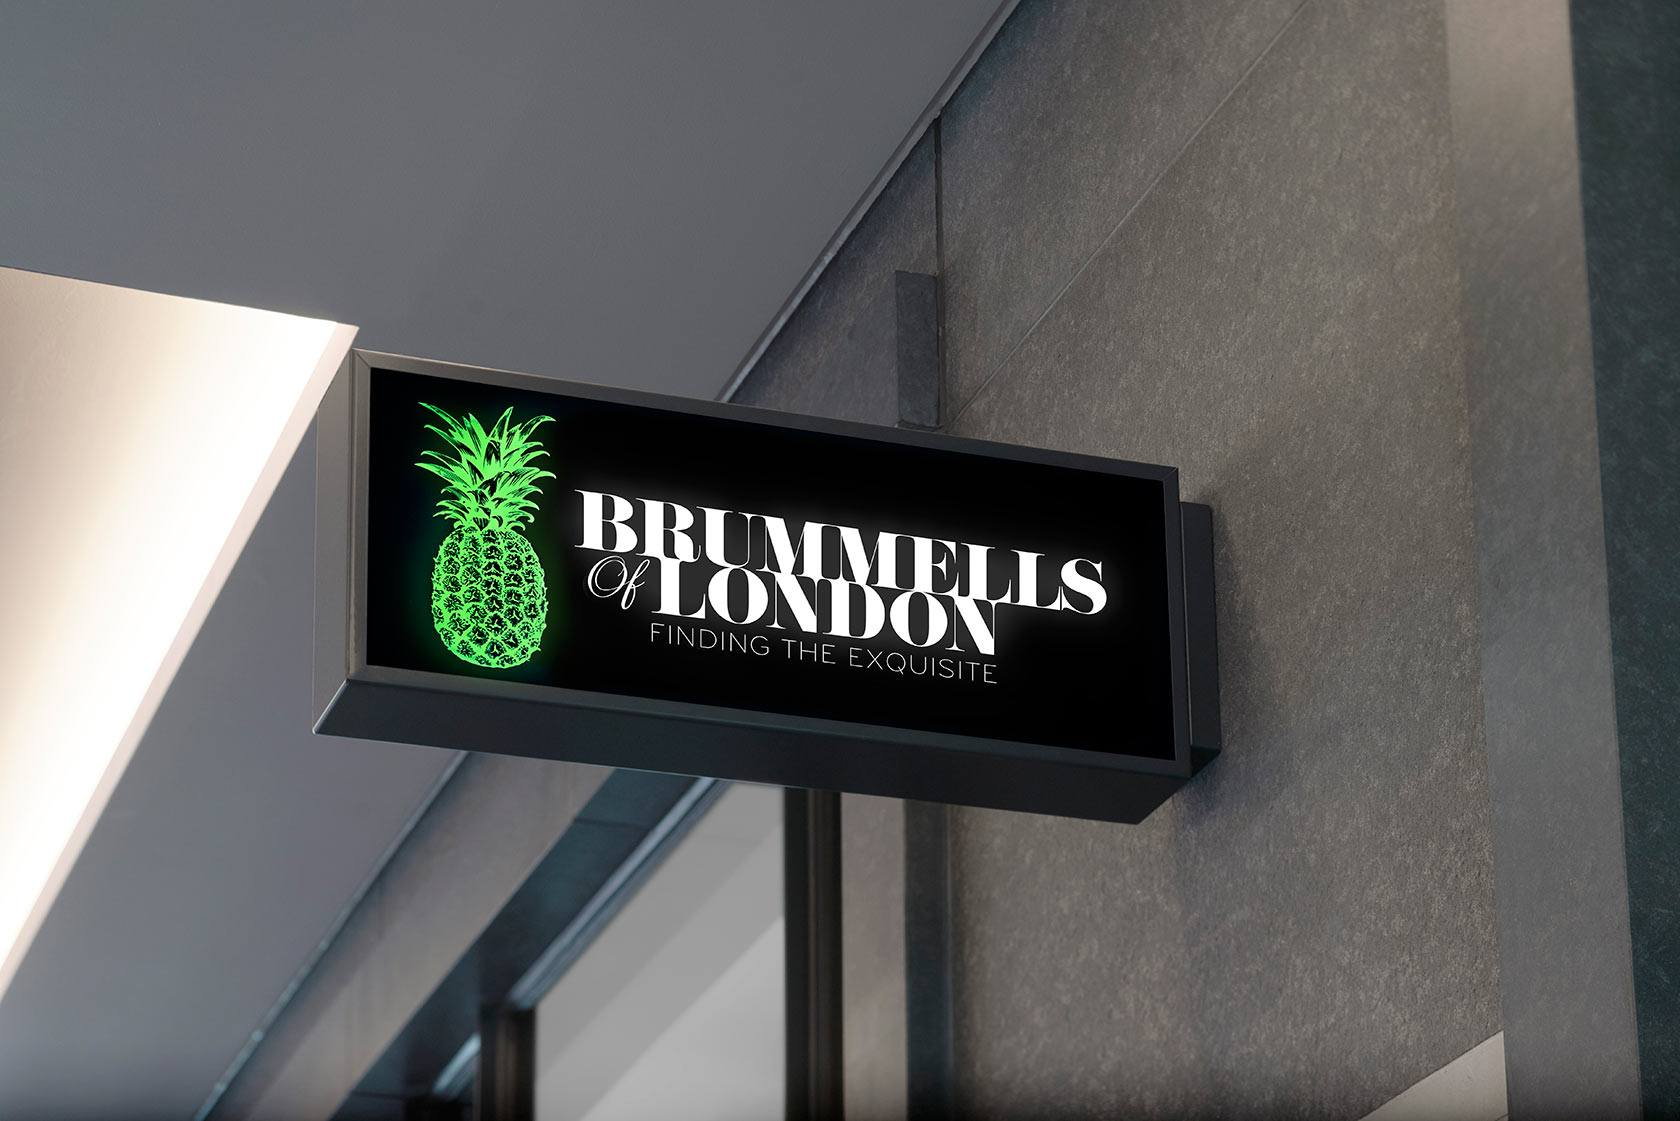 WMH-BRUMMELLS-OF-LONDON-STORE-SIGN-WEB image